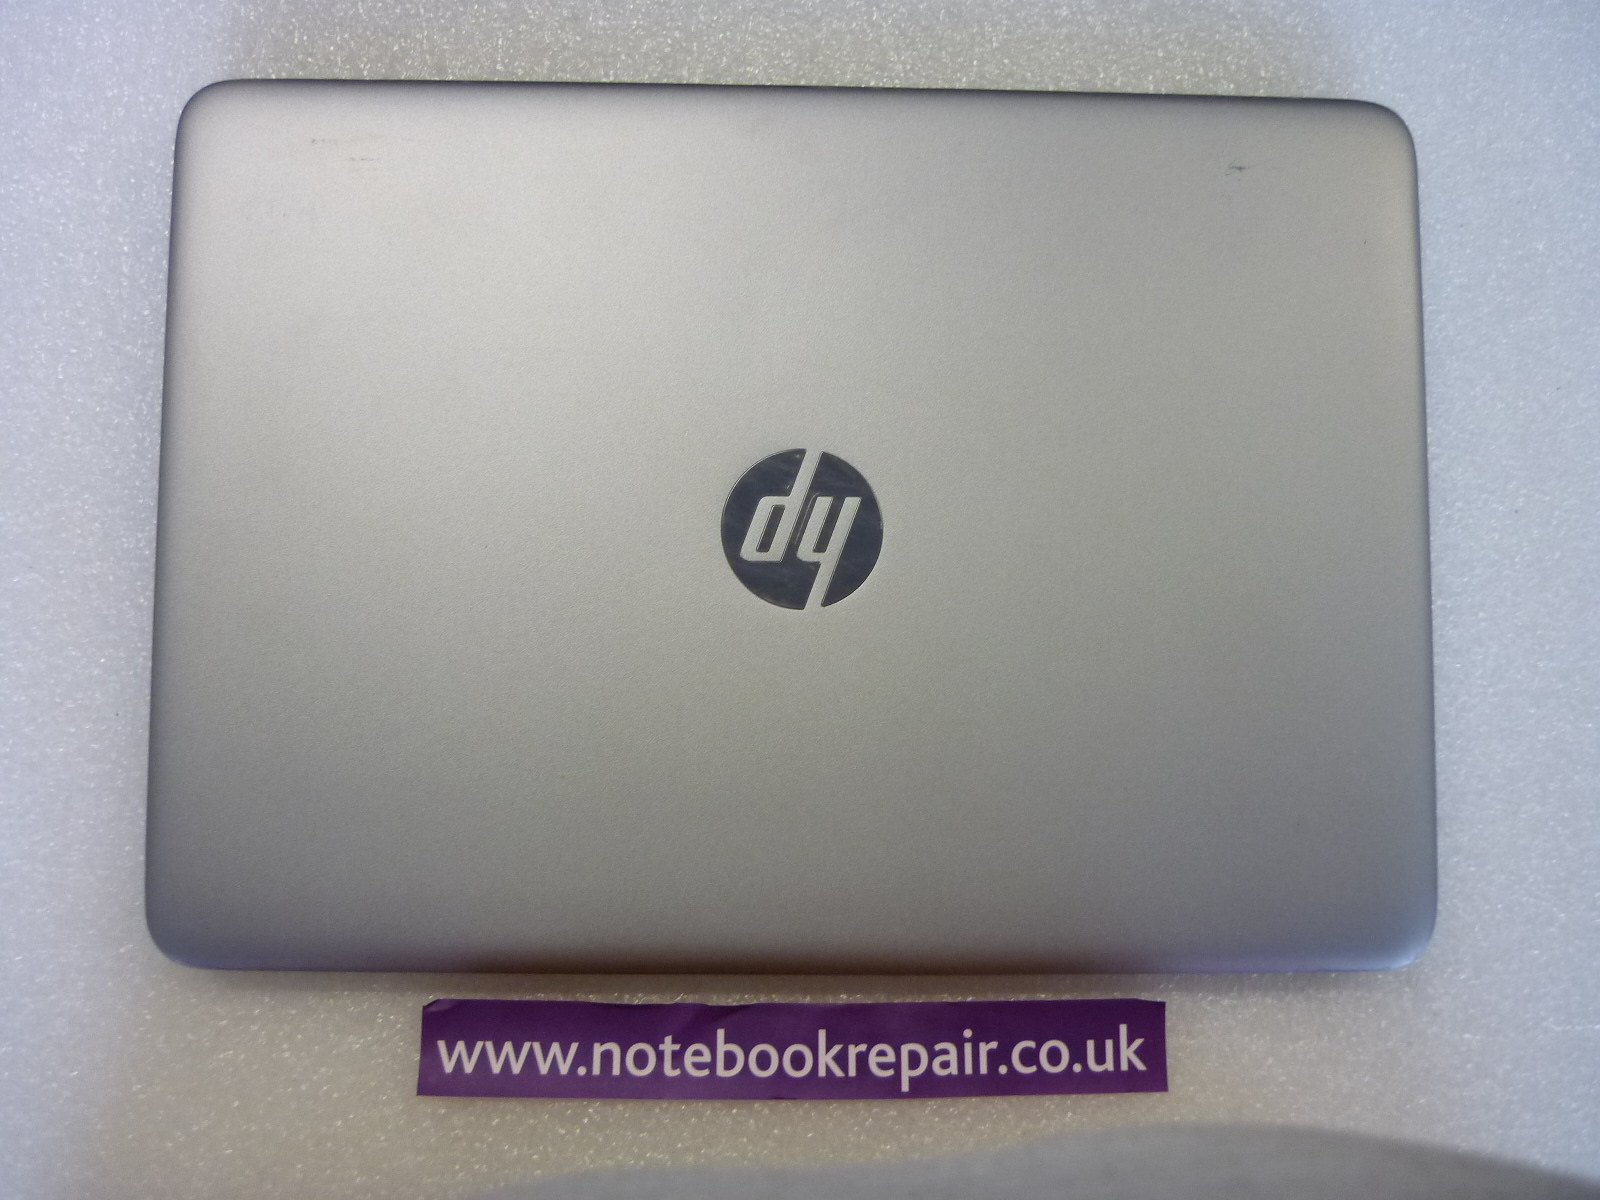 ADVENT 4211 TOUCHPAD COVER 307-012C142-TA2